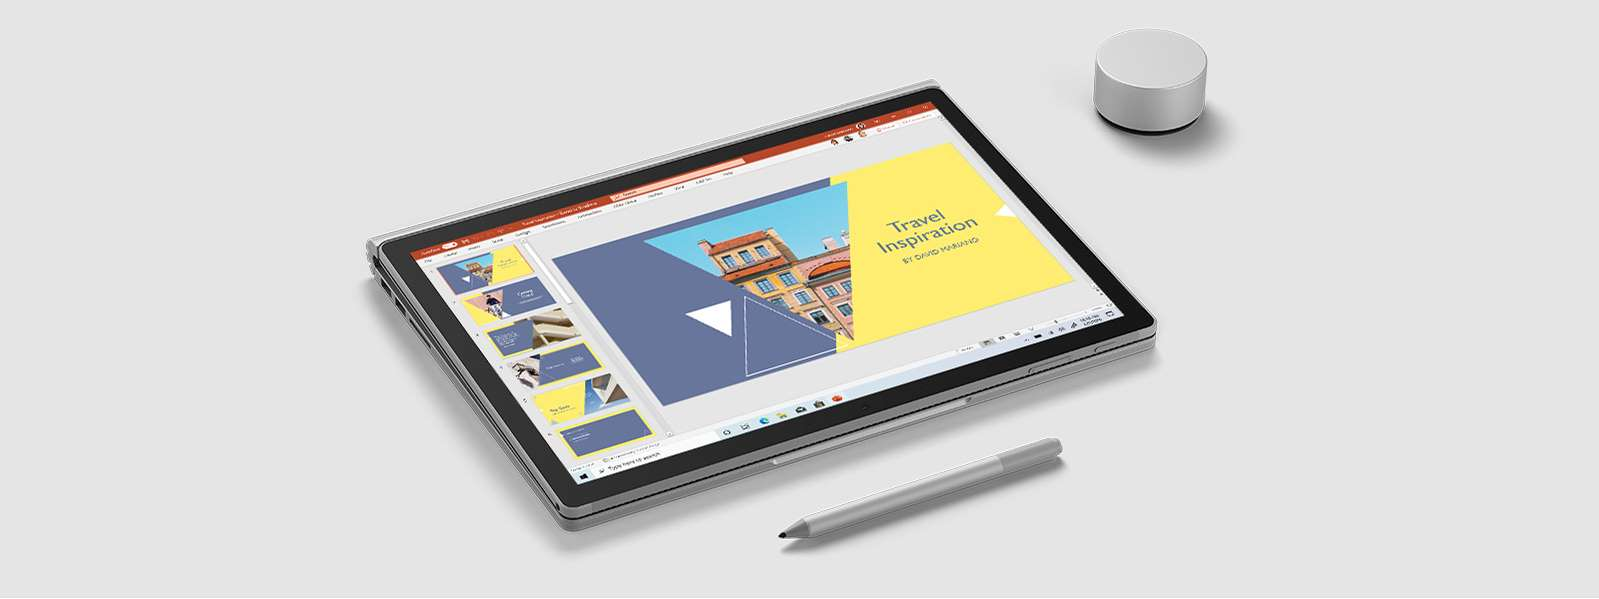 Surface book 3 Immersive portable studio